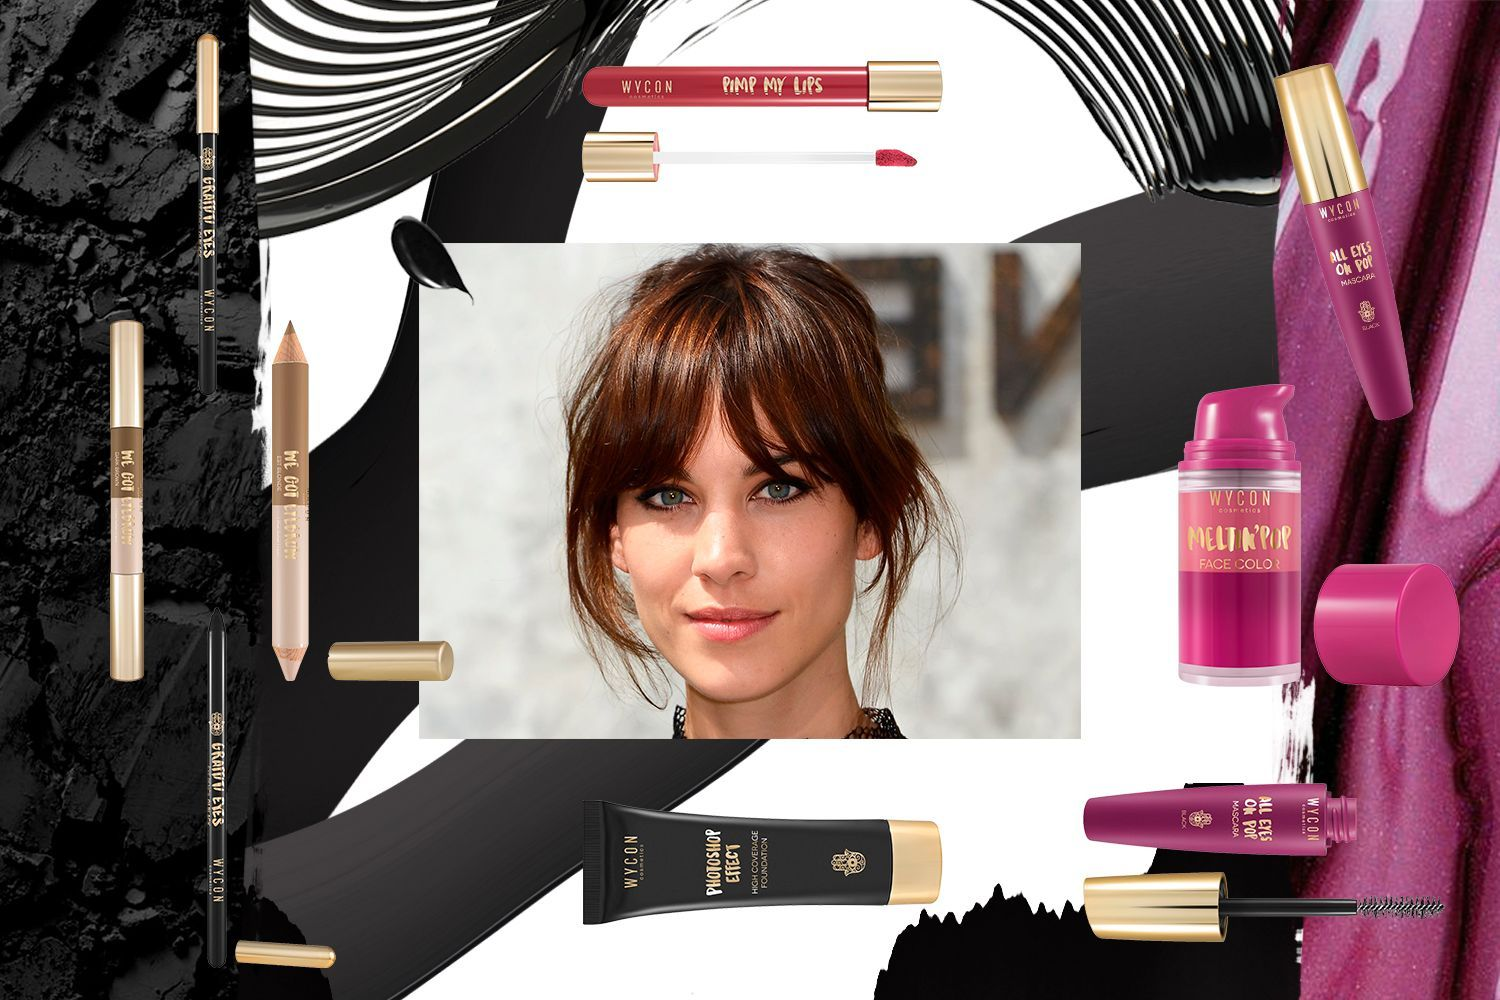 GET THE LOOK OF ALEXA CHUNG Ottieni l'effetto Alexa Chung con WYCON cosmetics in pochi e semplici step